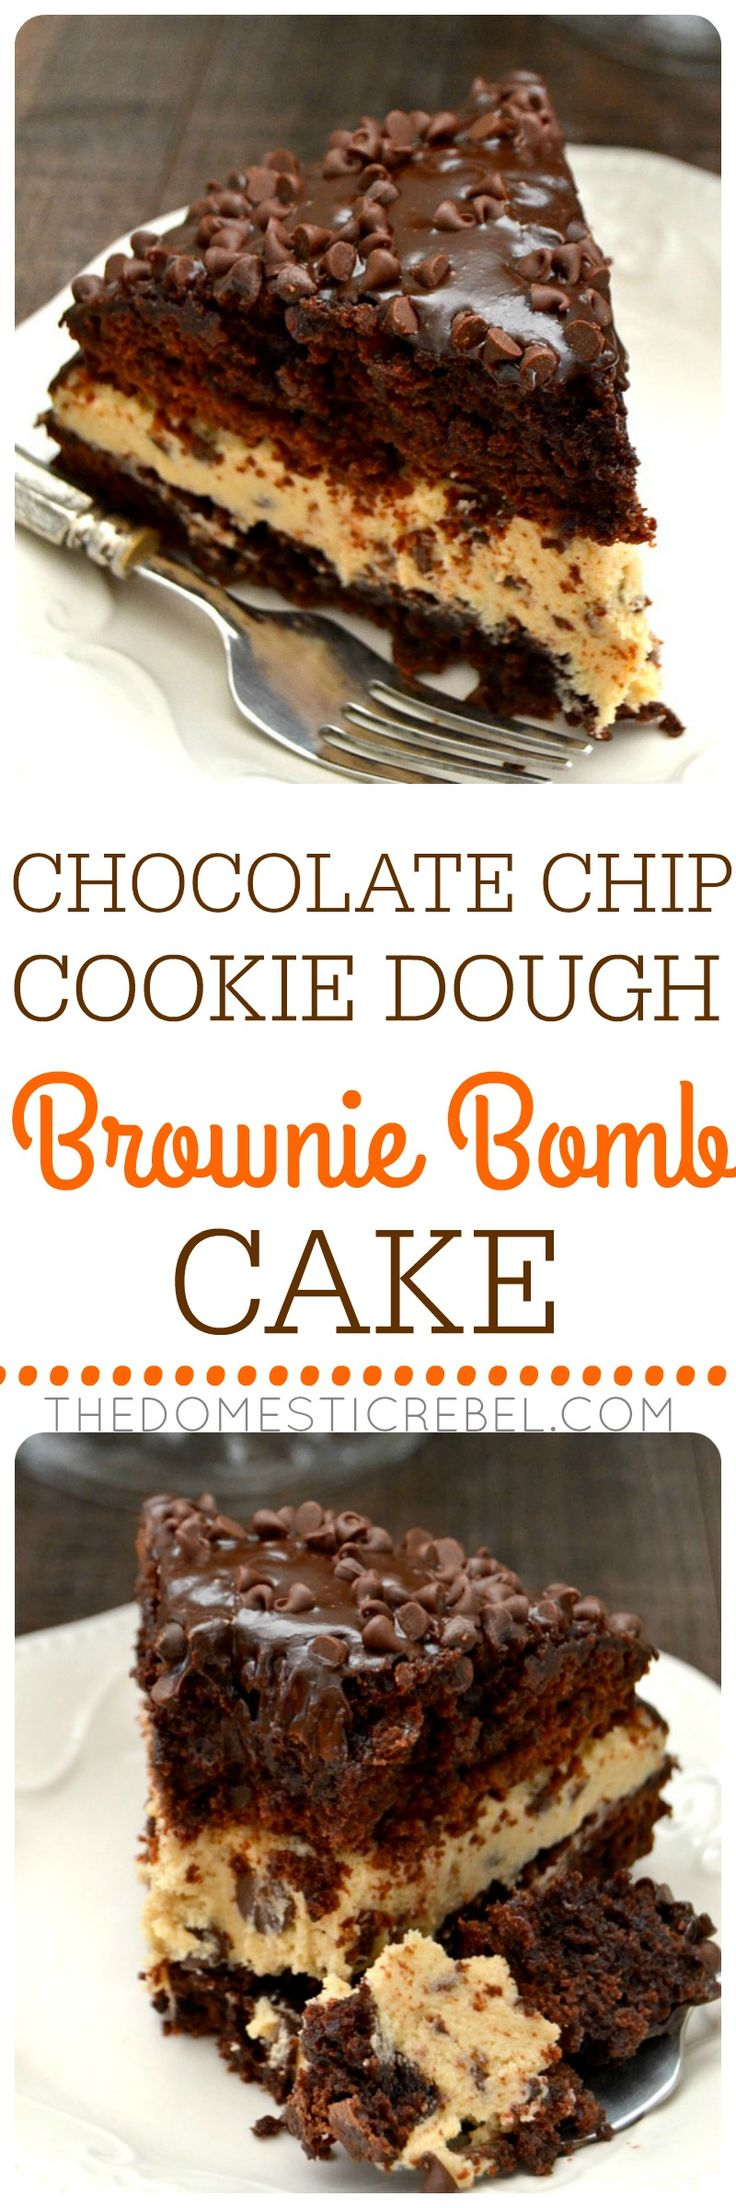 This Chocolate Chip Cookie Dough Brownie Bomb Cake is a fun twist on my signature dessert! Two fudgy brownie cake layers are sandwiched around egg-free chocolate chip cookie dough and topped with chocolate ganache! So easy and impressive!